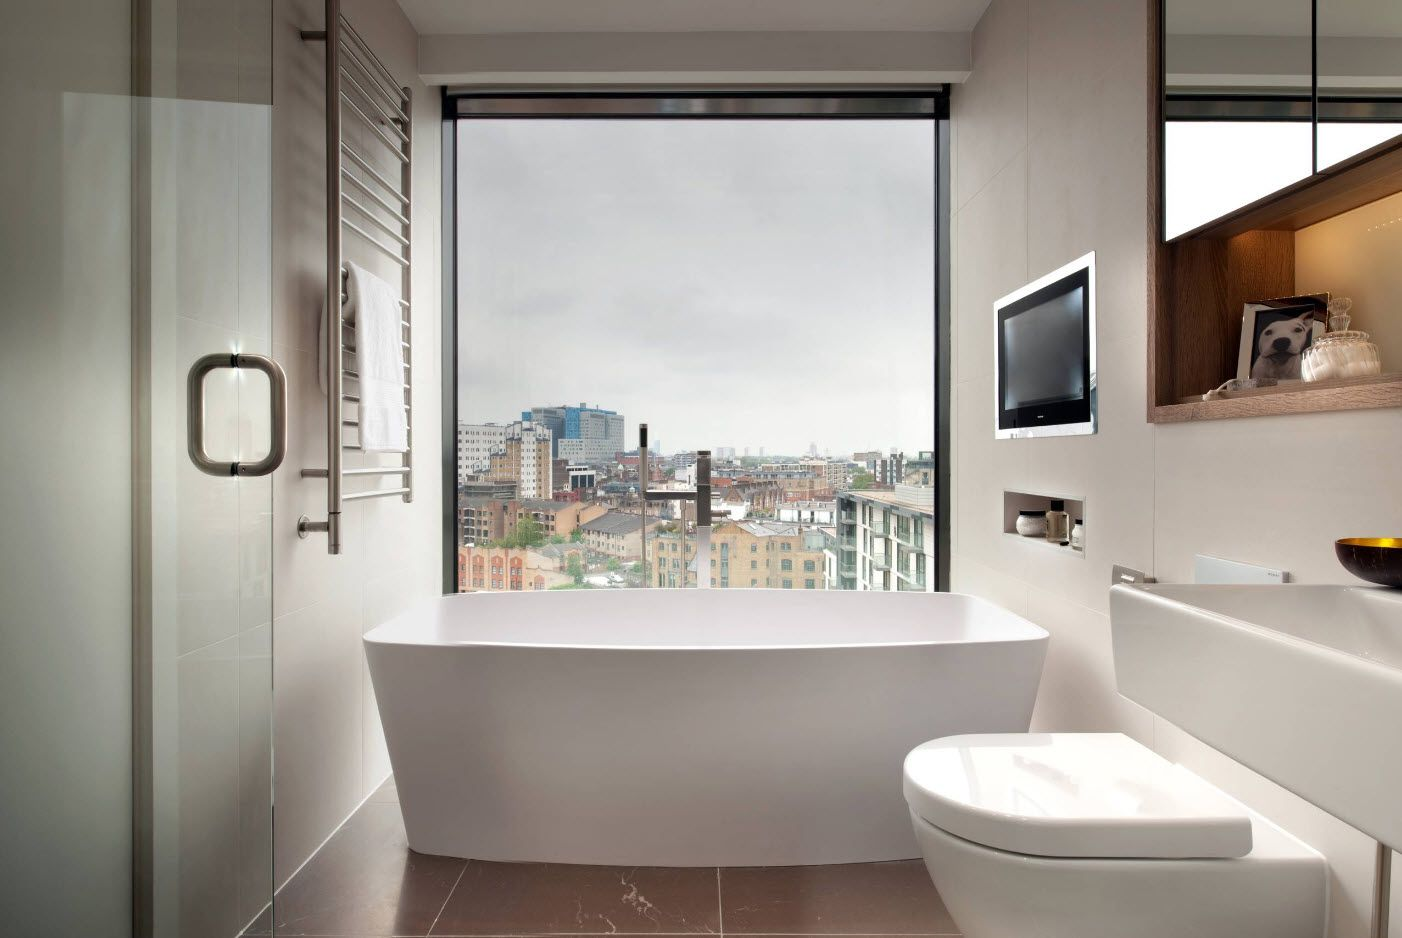 Small Bathroom Interior Space Optimization Ideas & Layout Photos 2017 spectacular look outside the window